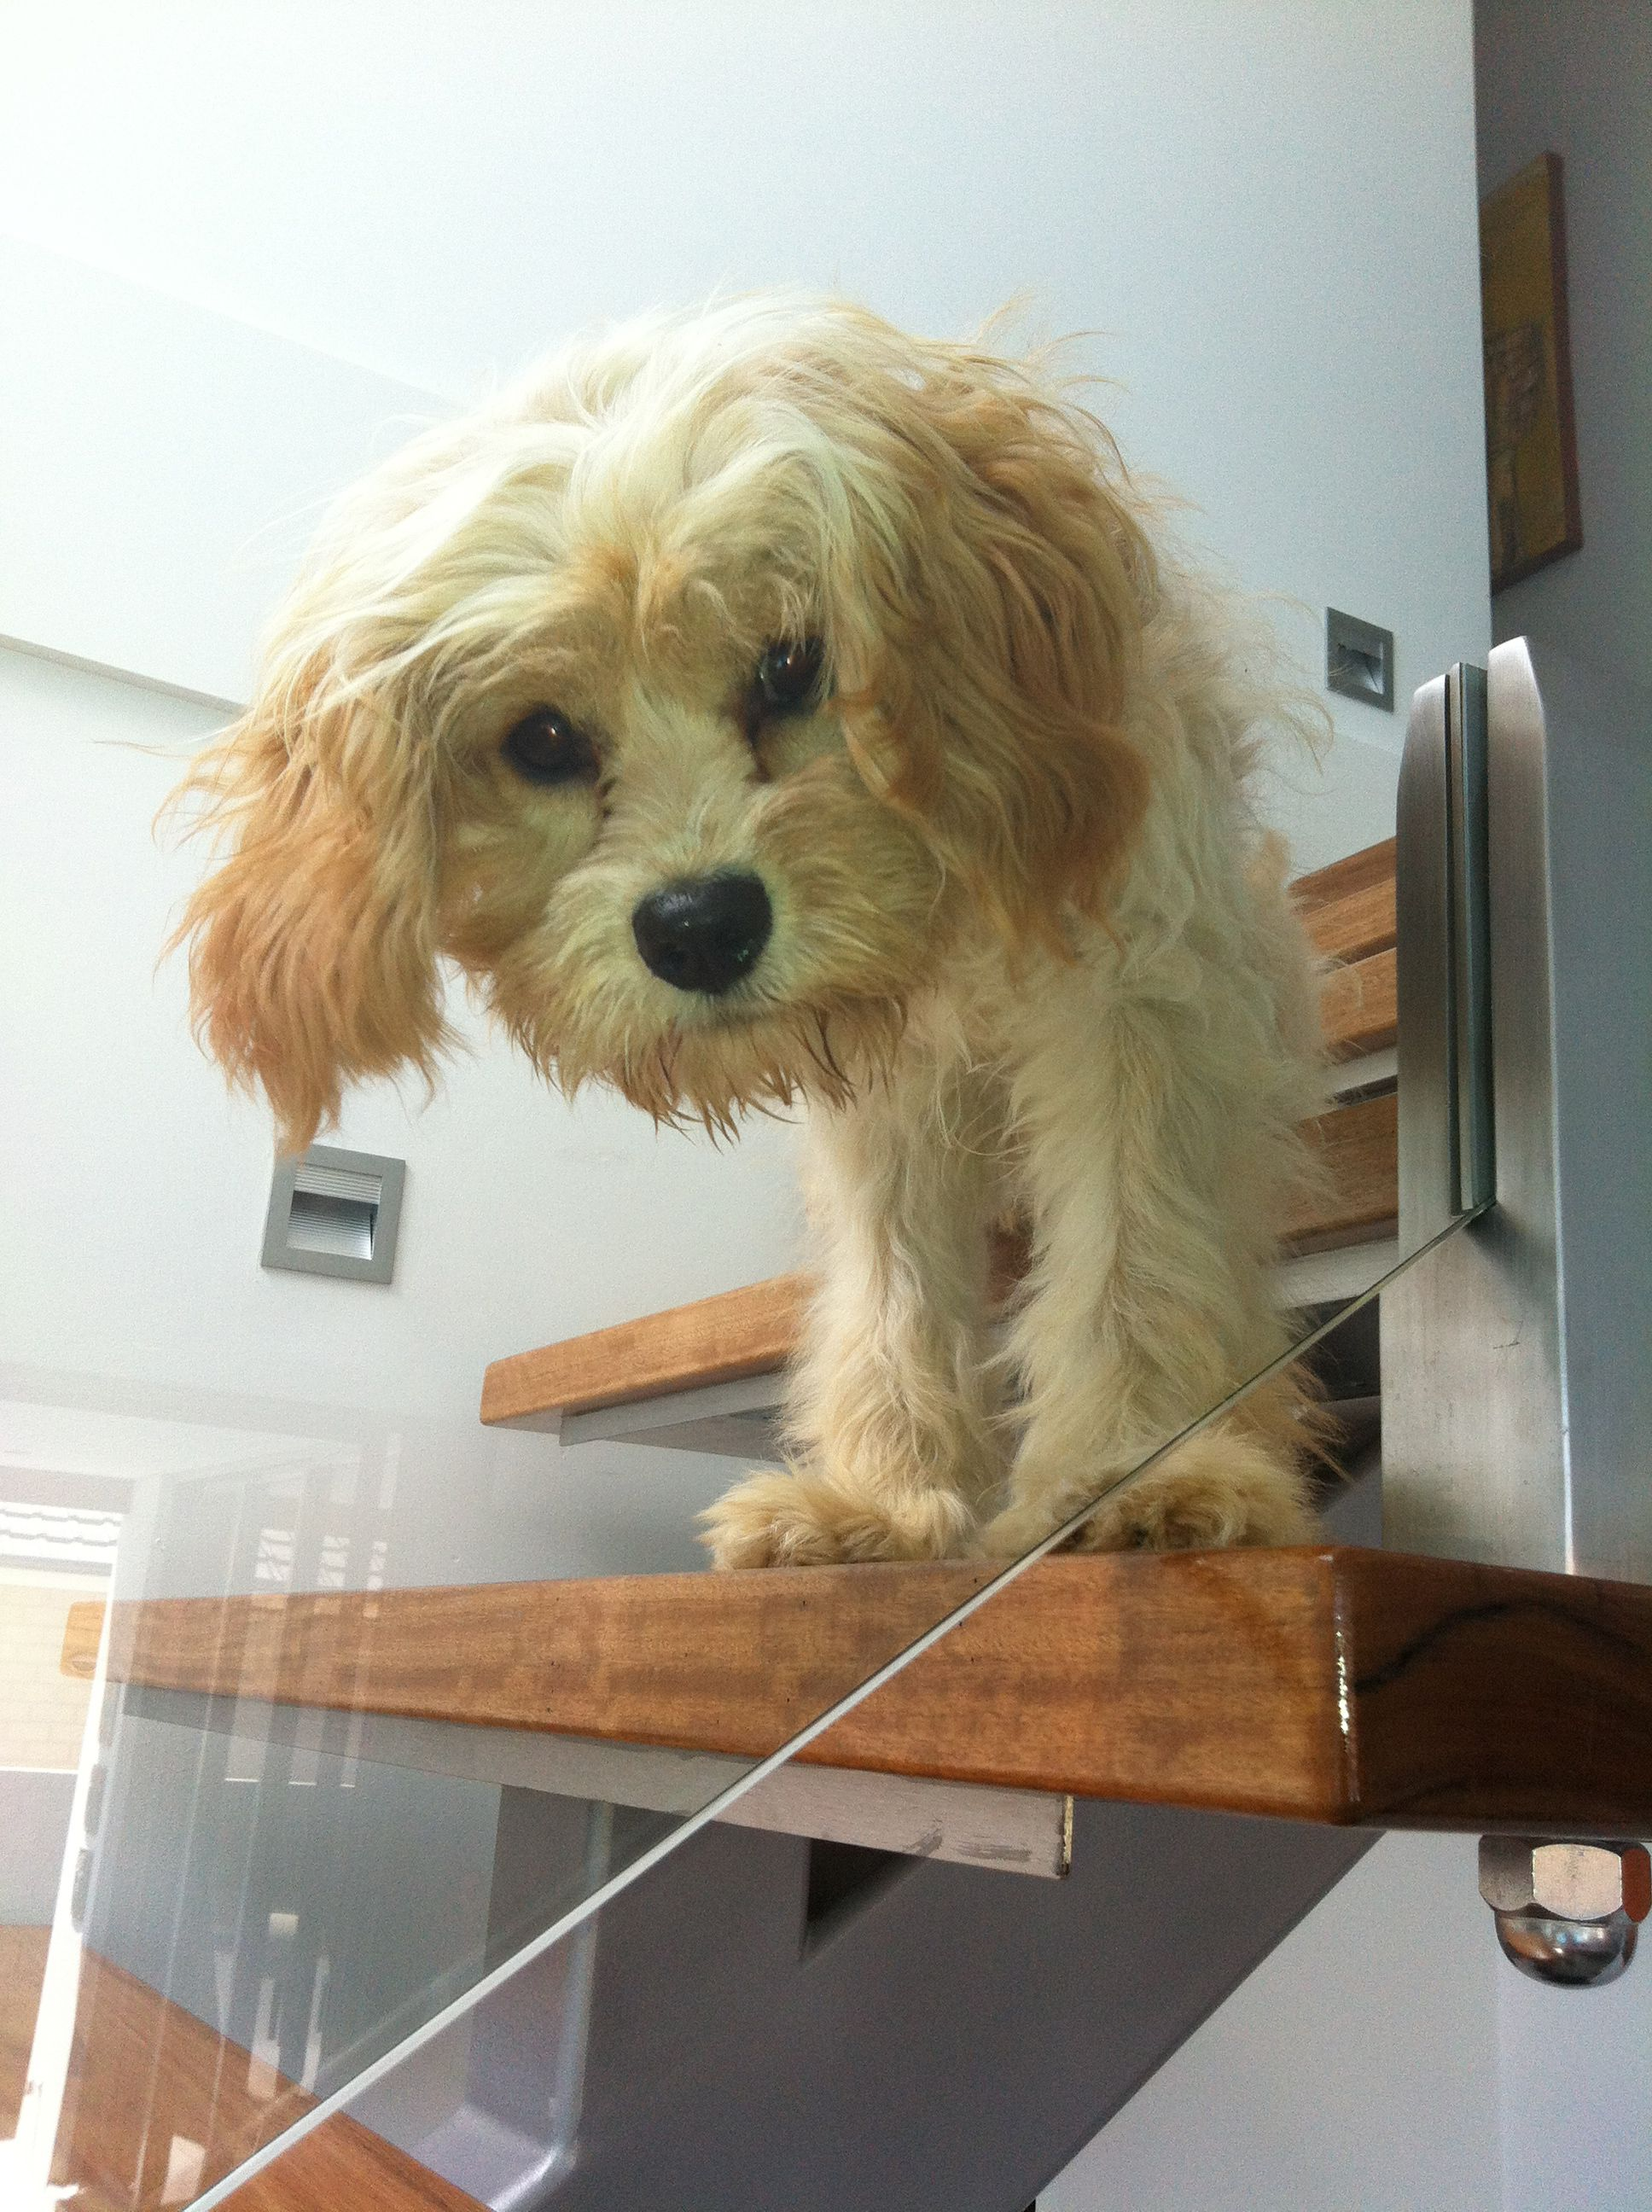 We found our own little cuba - Indi on the stairs!